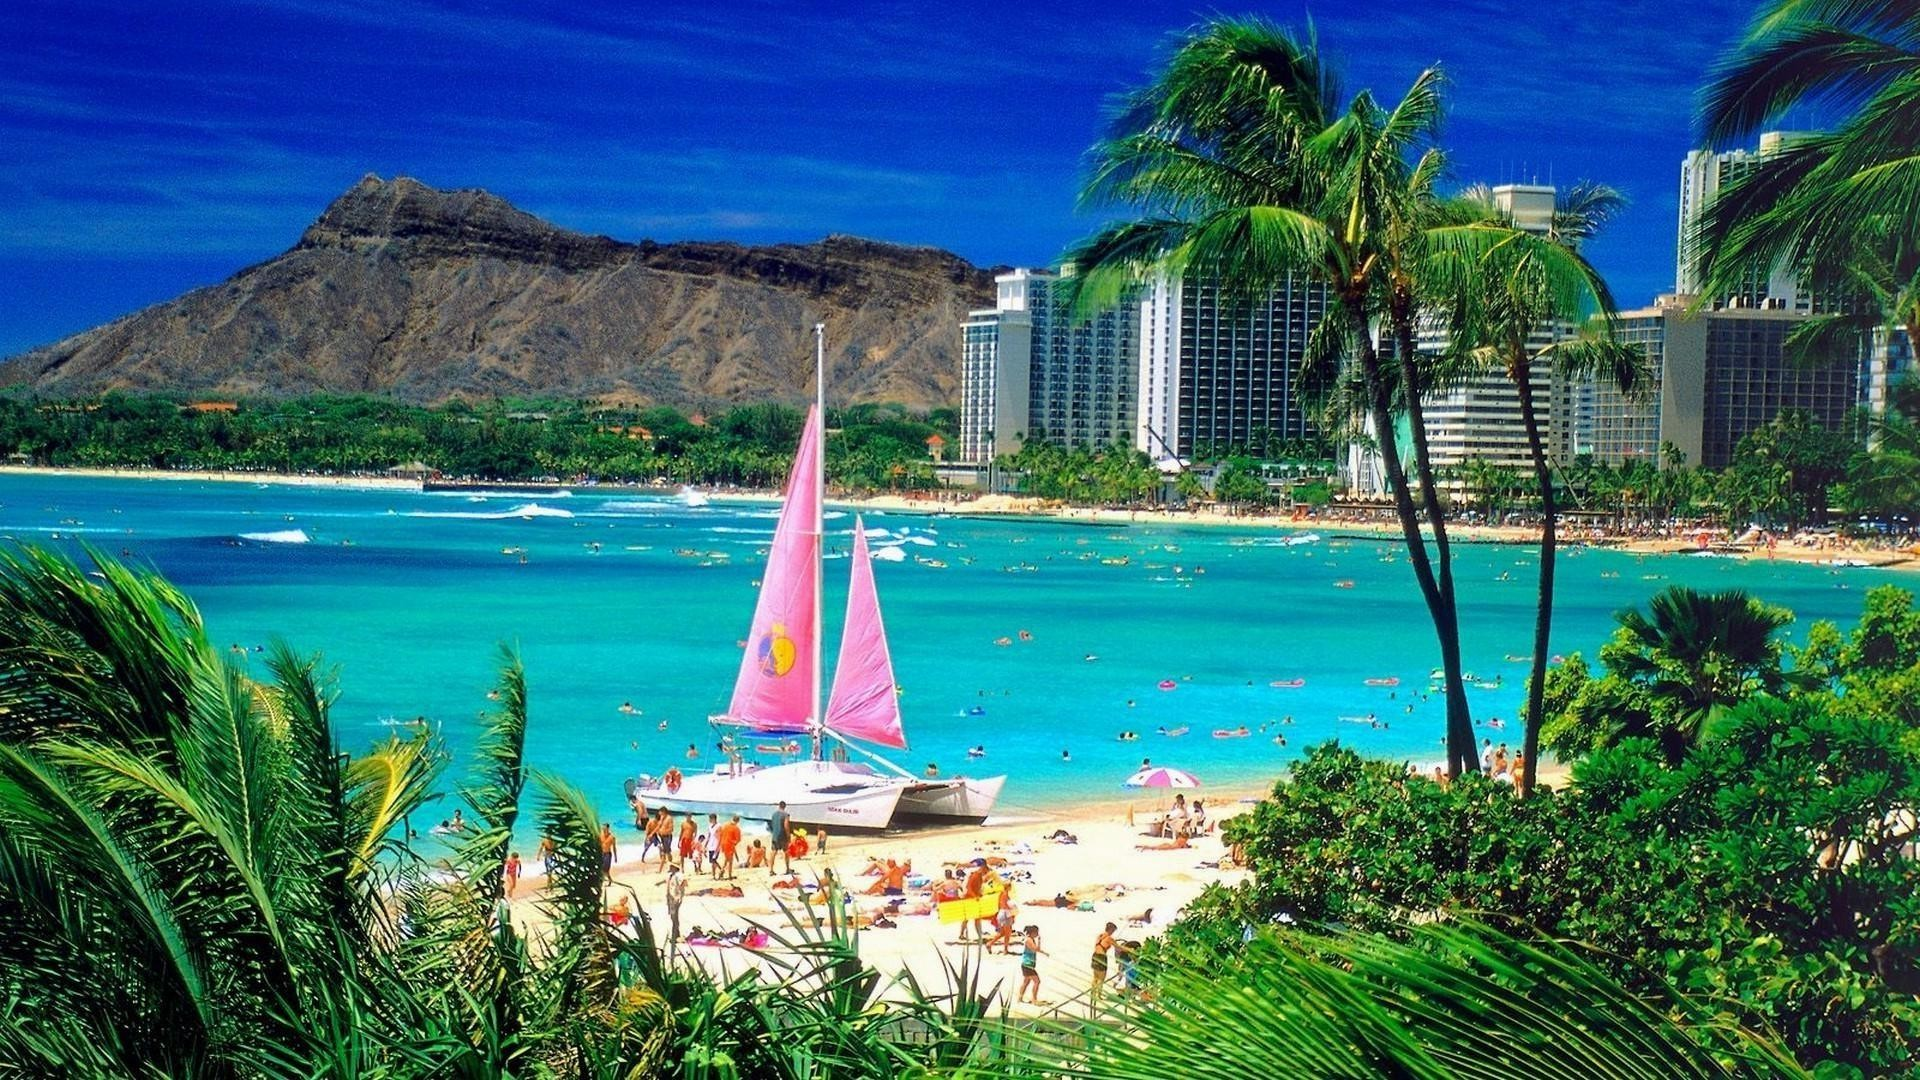 1920x1080 Waikiki-honolulu-hawaii-wide-wallpaper-hd